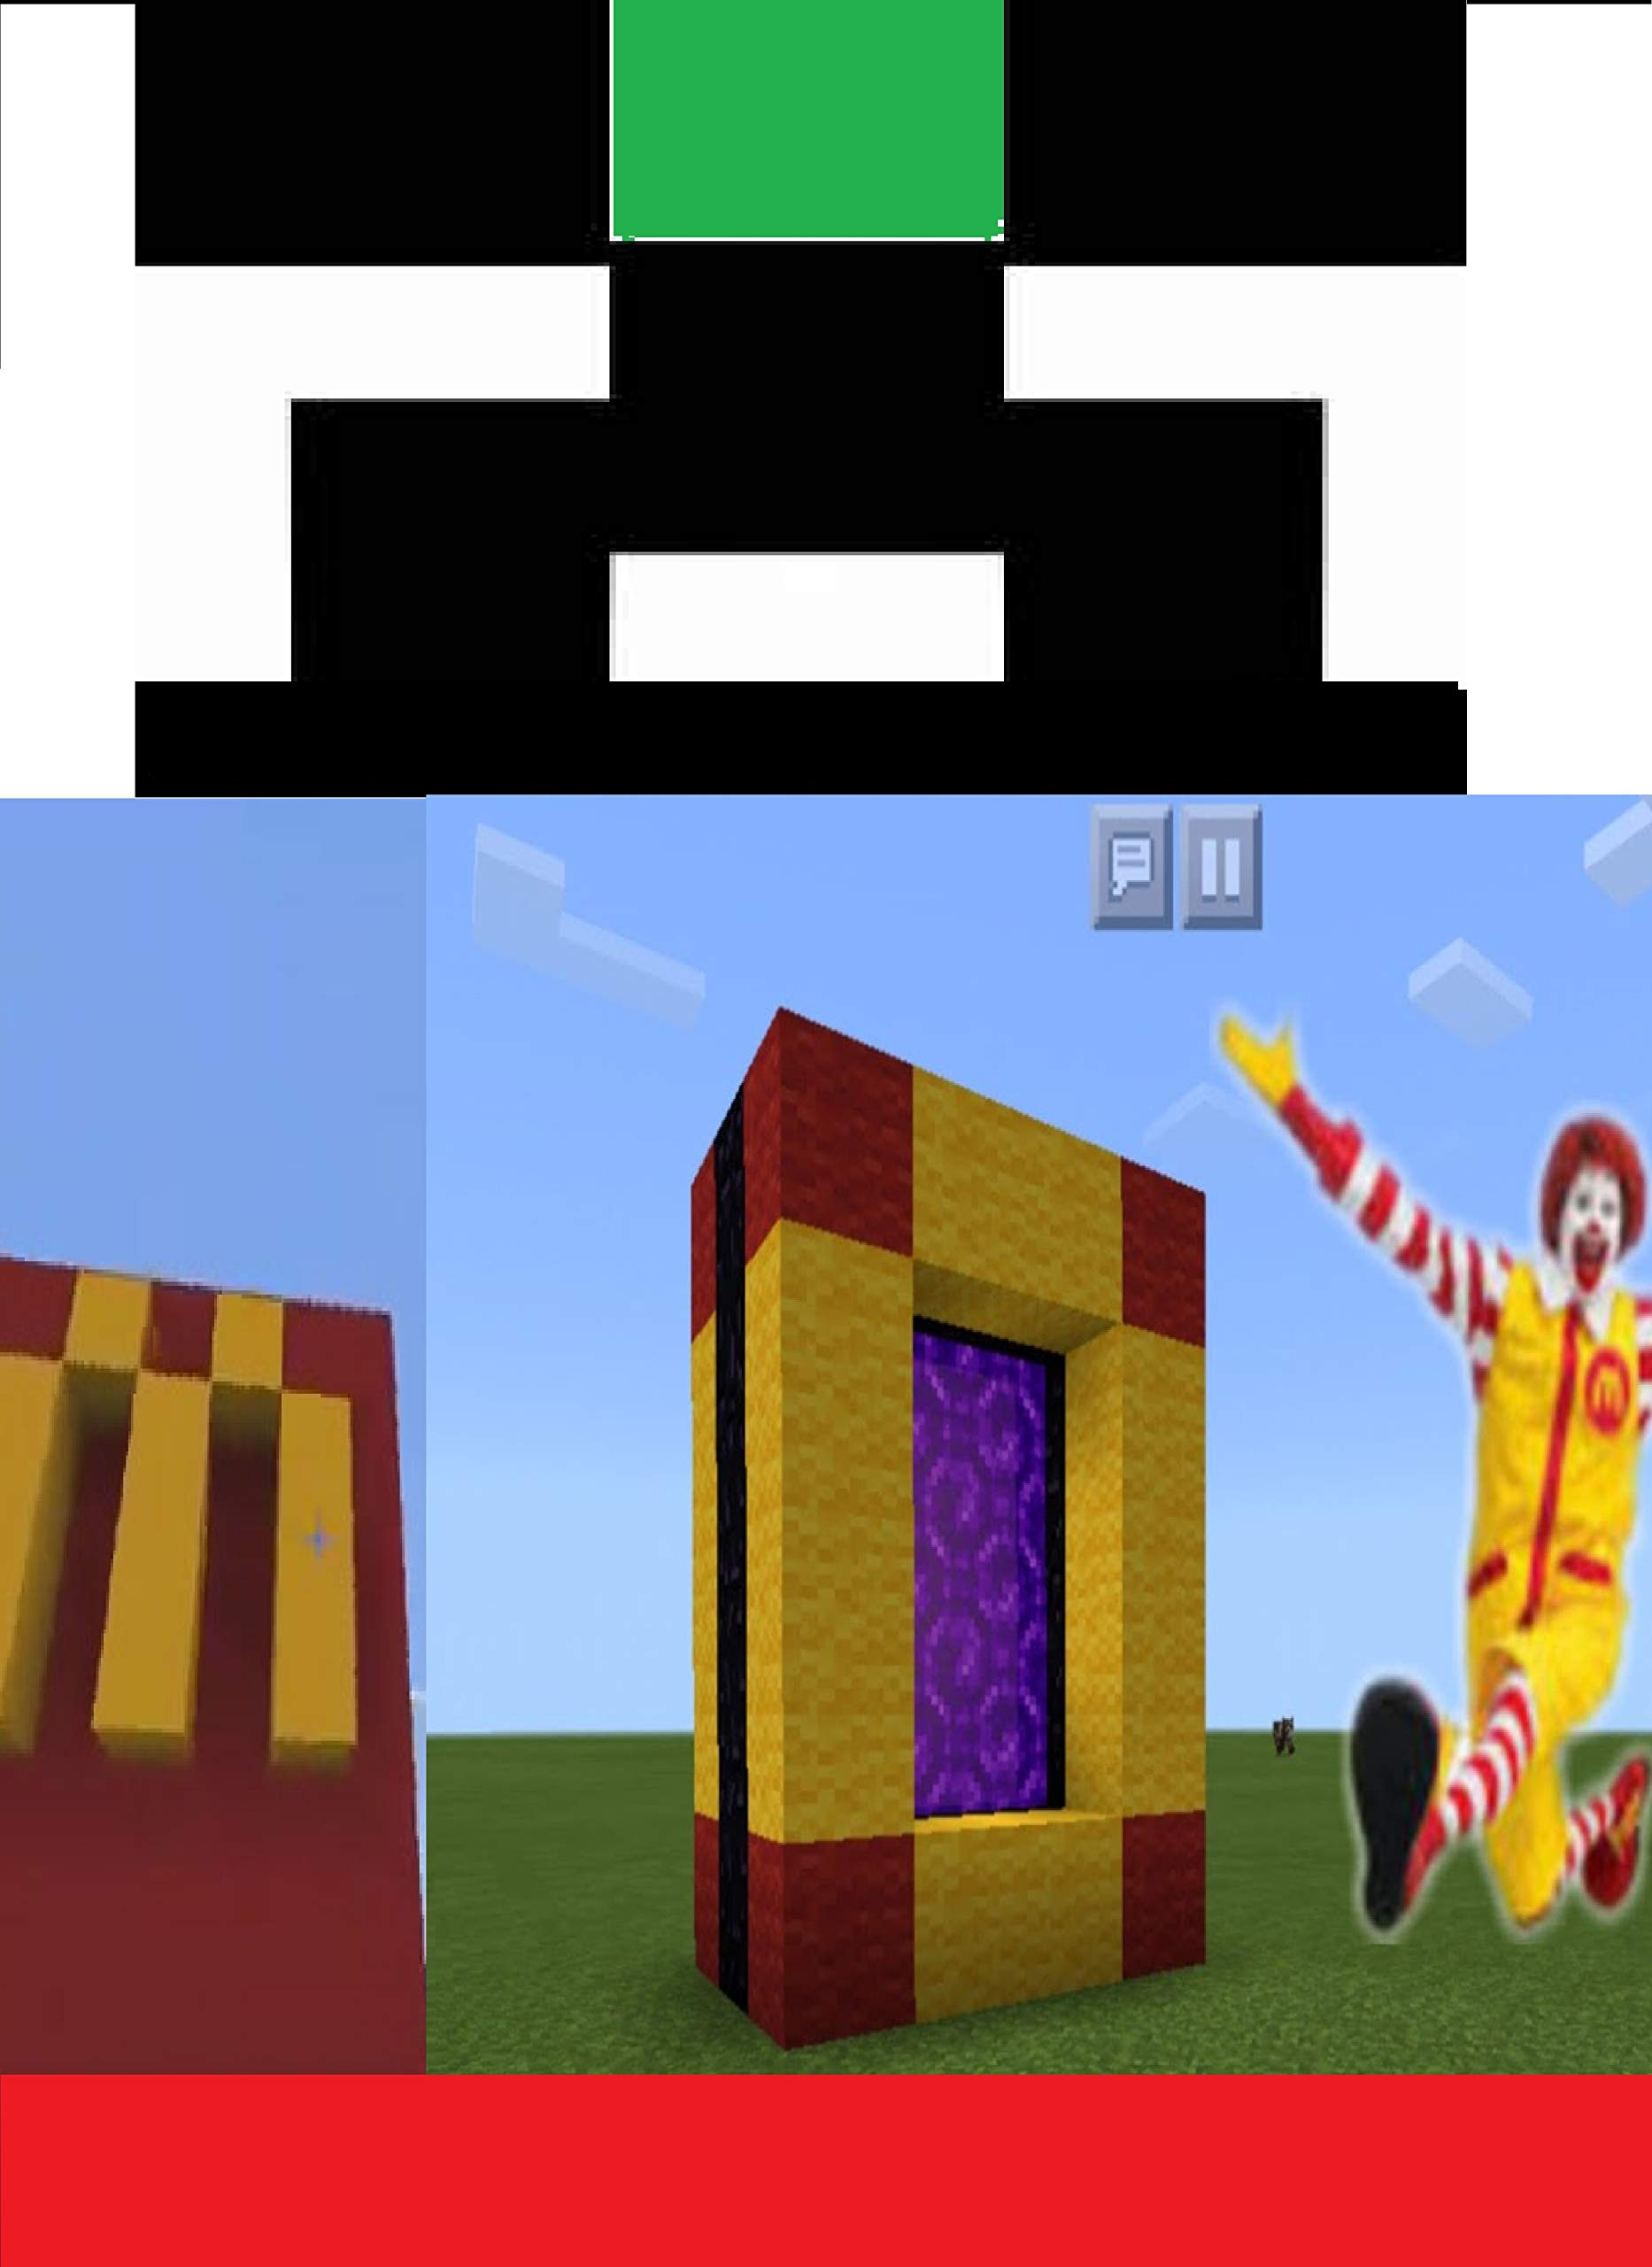 Minecraft - How To Make a Portal To The McDonald's Dimension - : (UNOFFICIAL Screen Guide Handbook)- Unofficial Minecraft Books for Kids, Teens, & Nerds graphic novels, Ultimate Minecraft Secrets: Ti